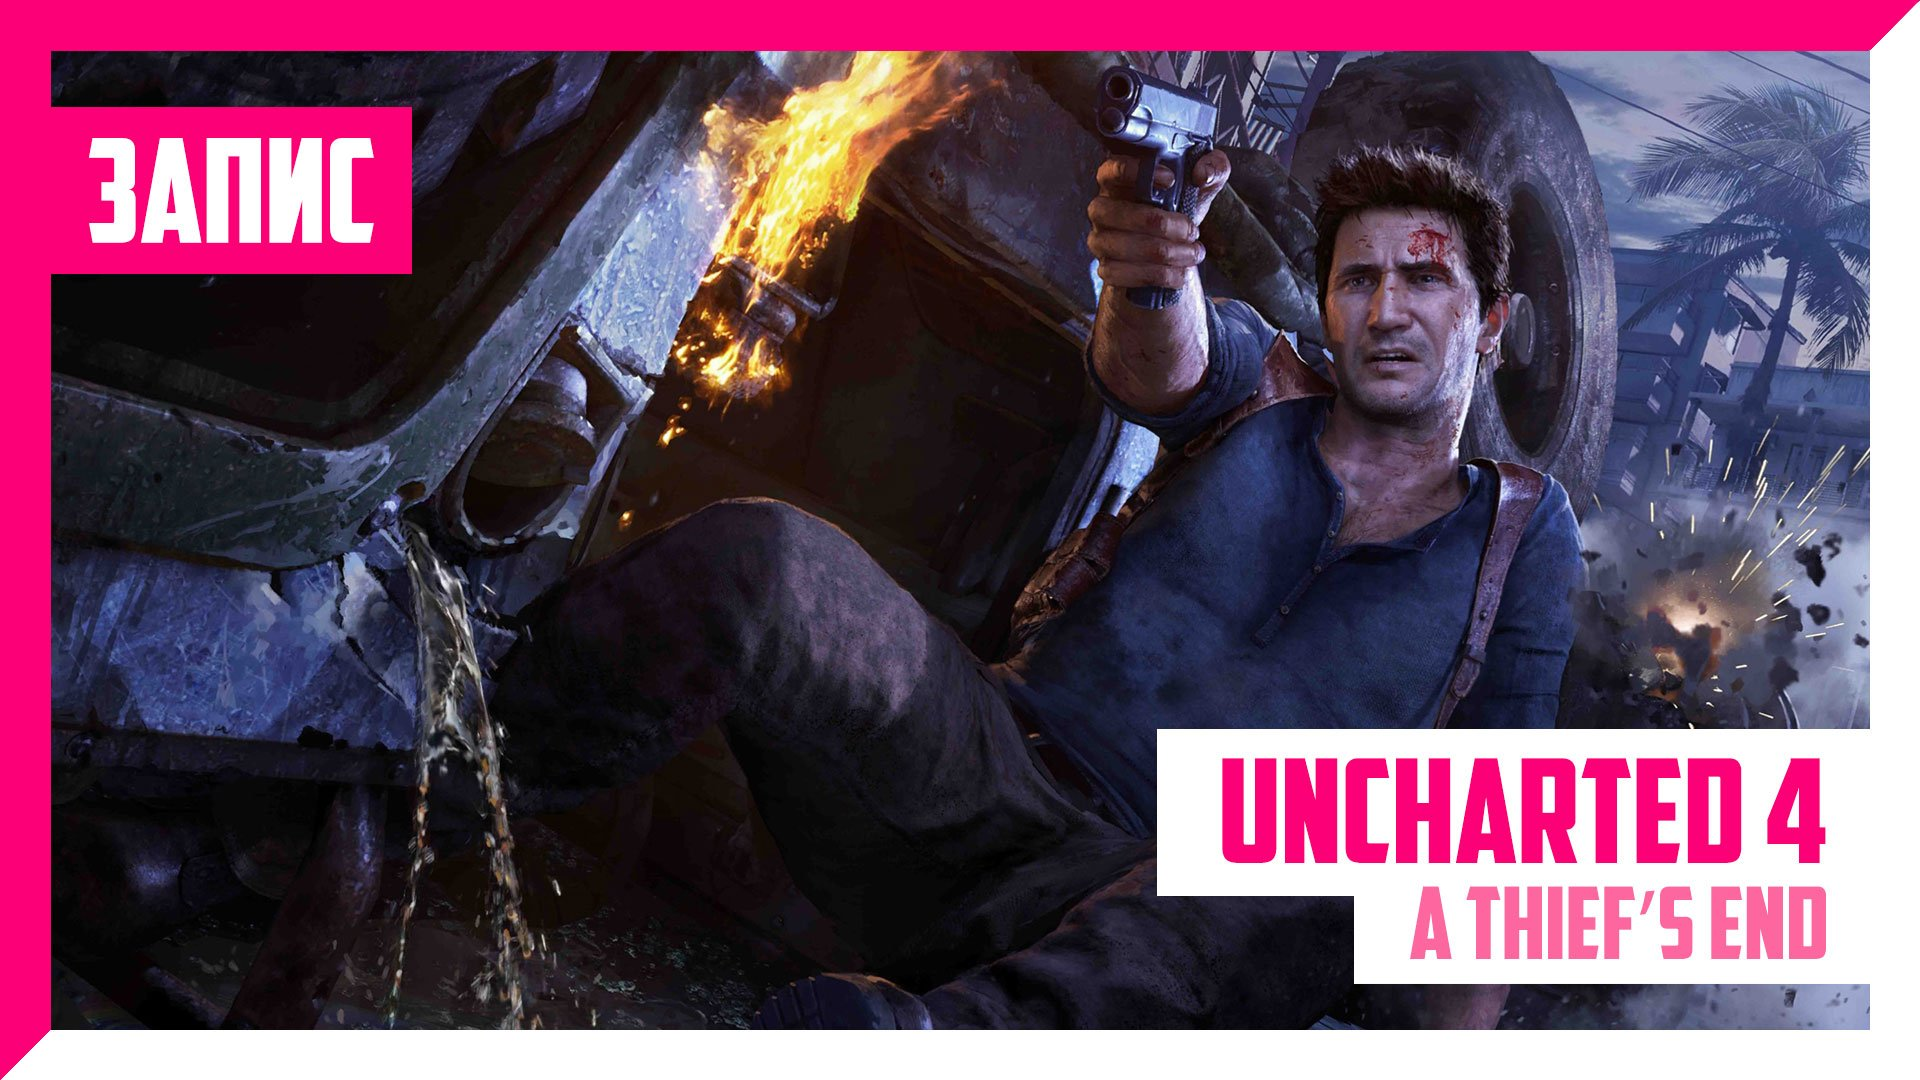 Стрім Uncharted 4: A Thief's End by @Erleke | ЗАПИС (Ретроспектива Uncharted)